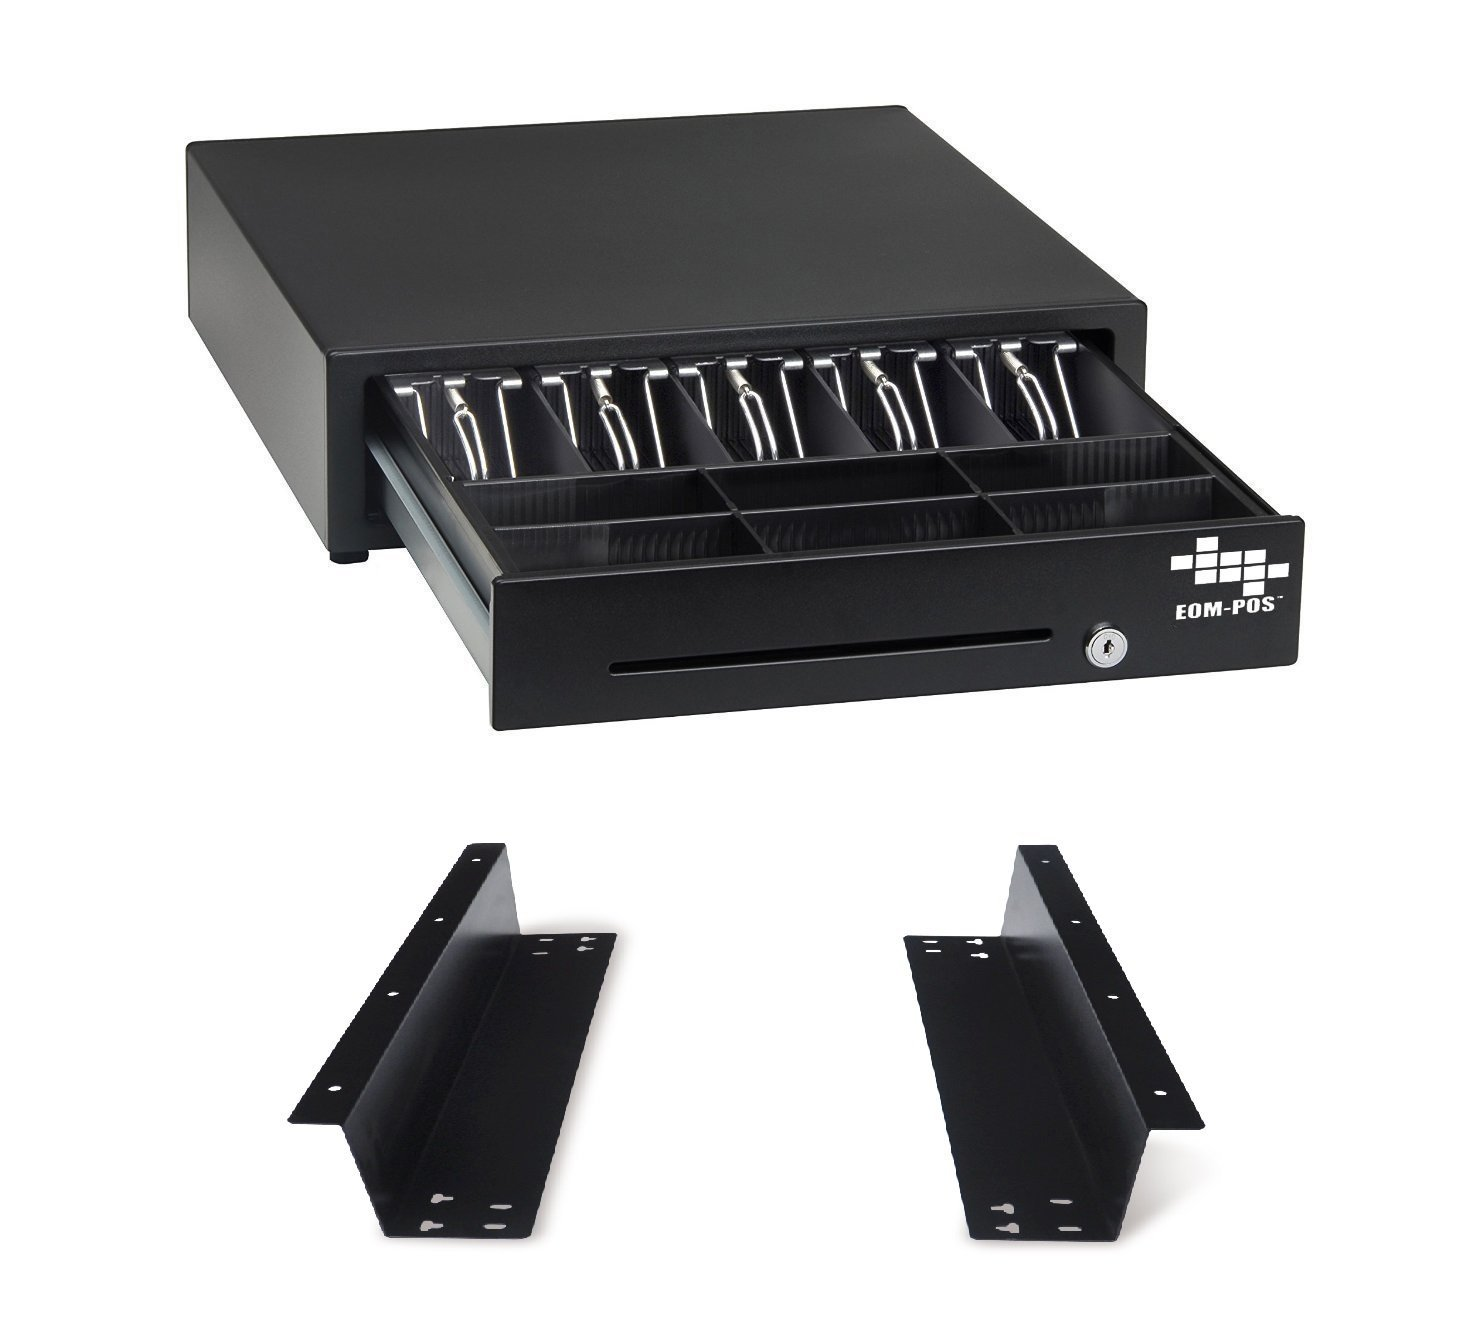 EOM-POS Heavy Duty Cash Register Money Drawer + Mounting Brackets for Under Counter Installation. Compatible with Square Stand [Receipt Printer Required]. Built in cable to connect to receipt printer.